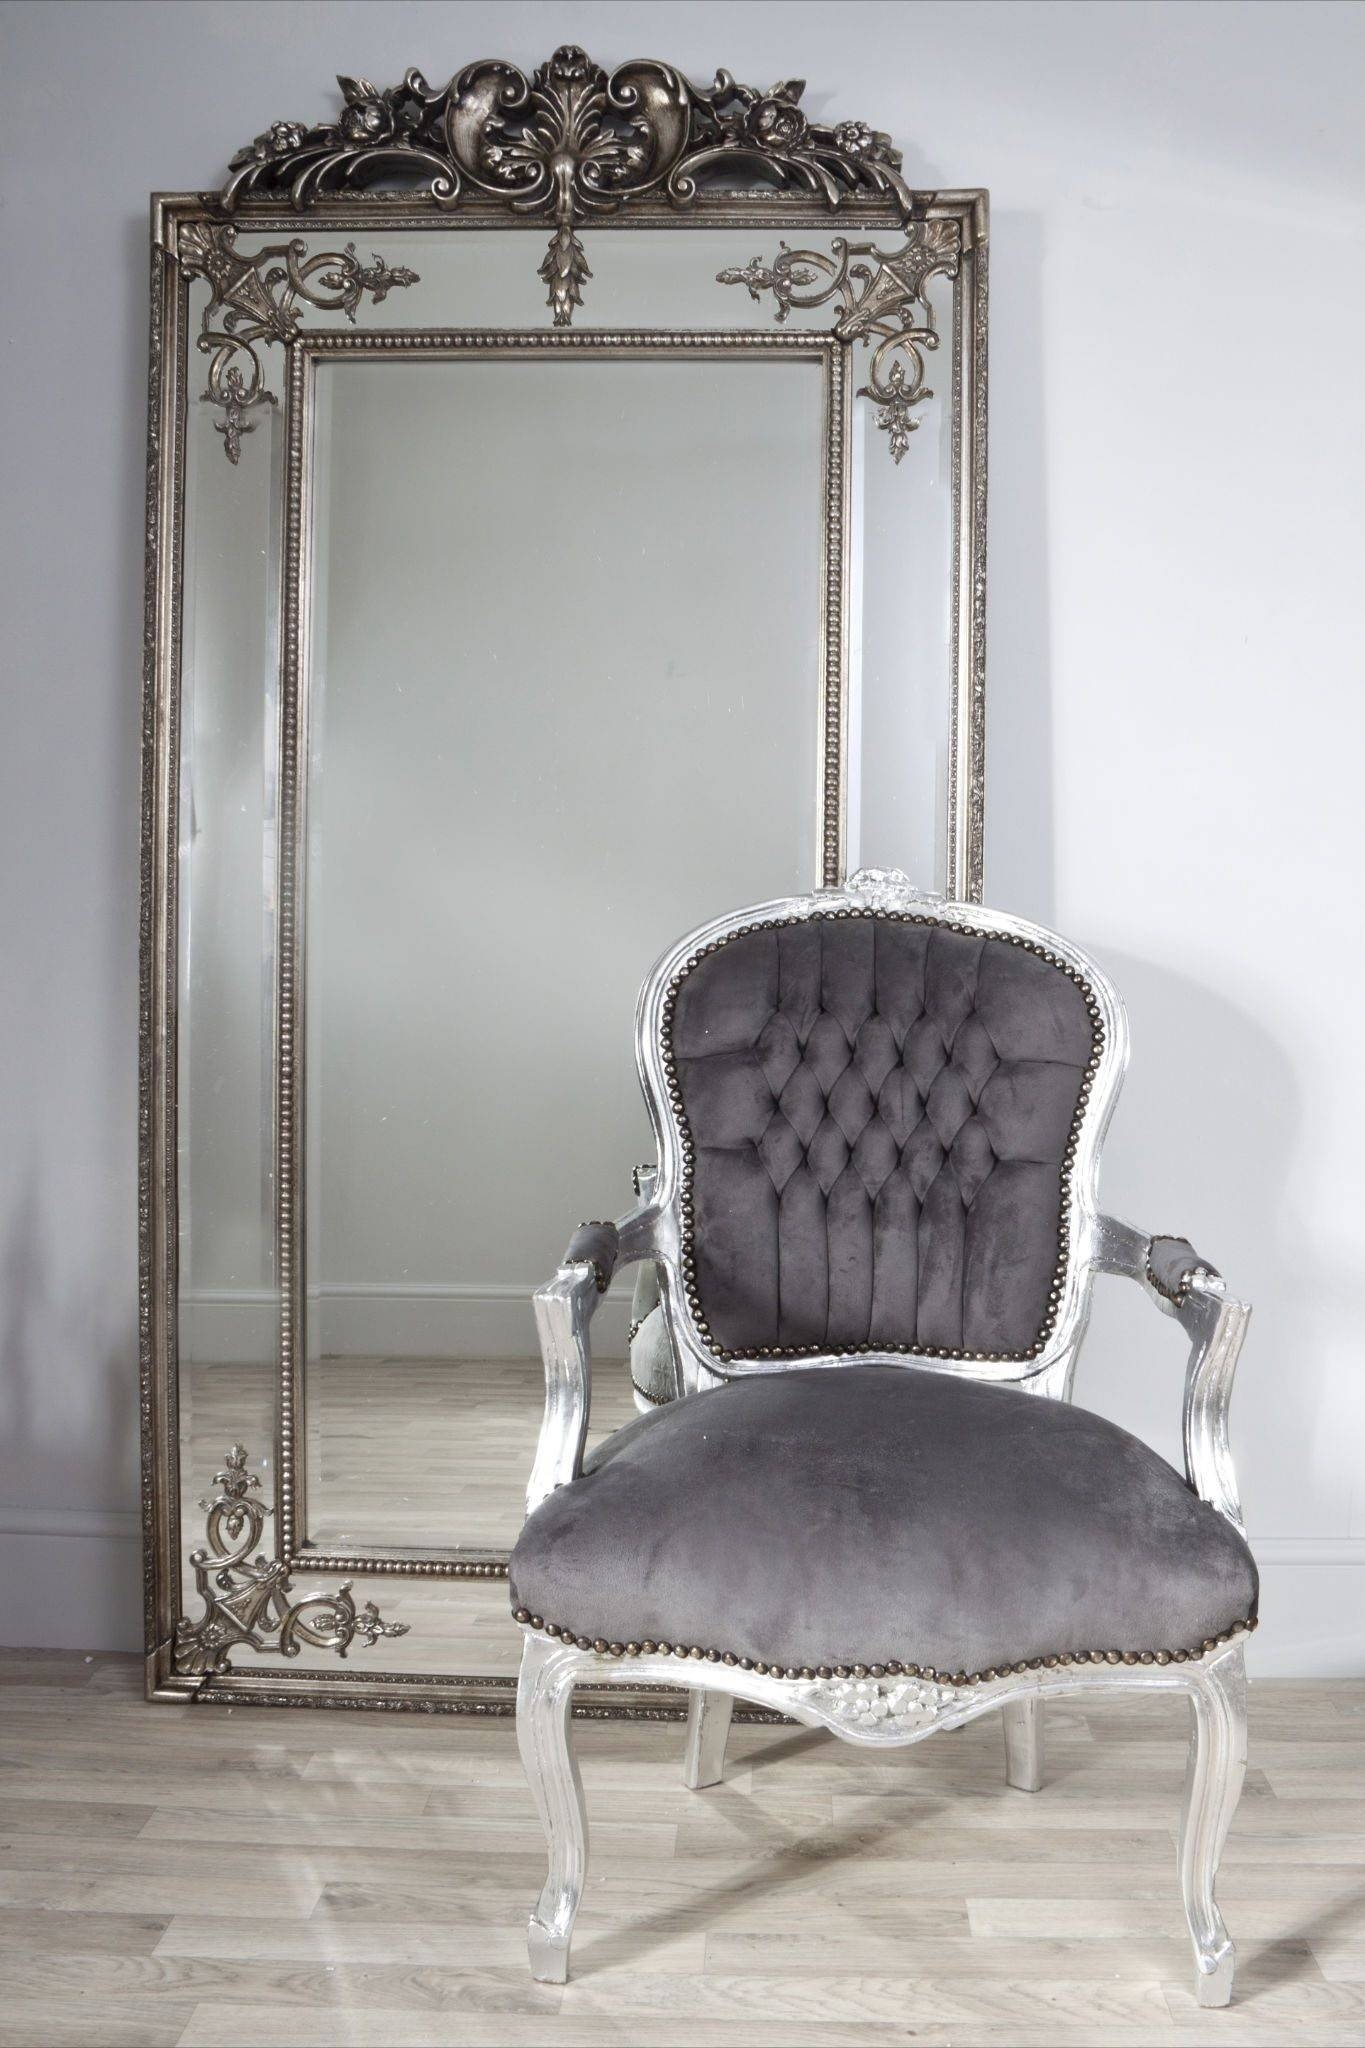 Ornate Mirrors For Sale 122 Fascinating Ideas On I Have Been On in Cream Ornate Mirrors (Image 17 of 25)